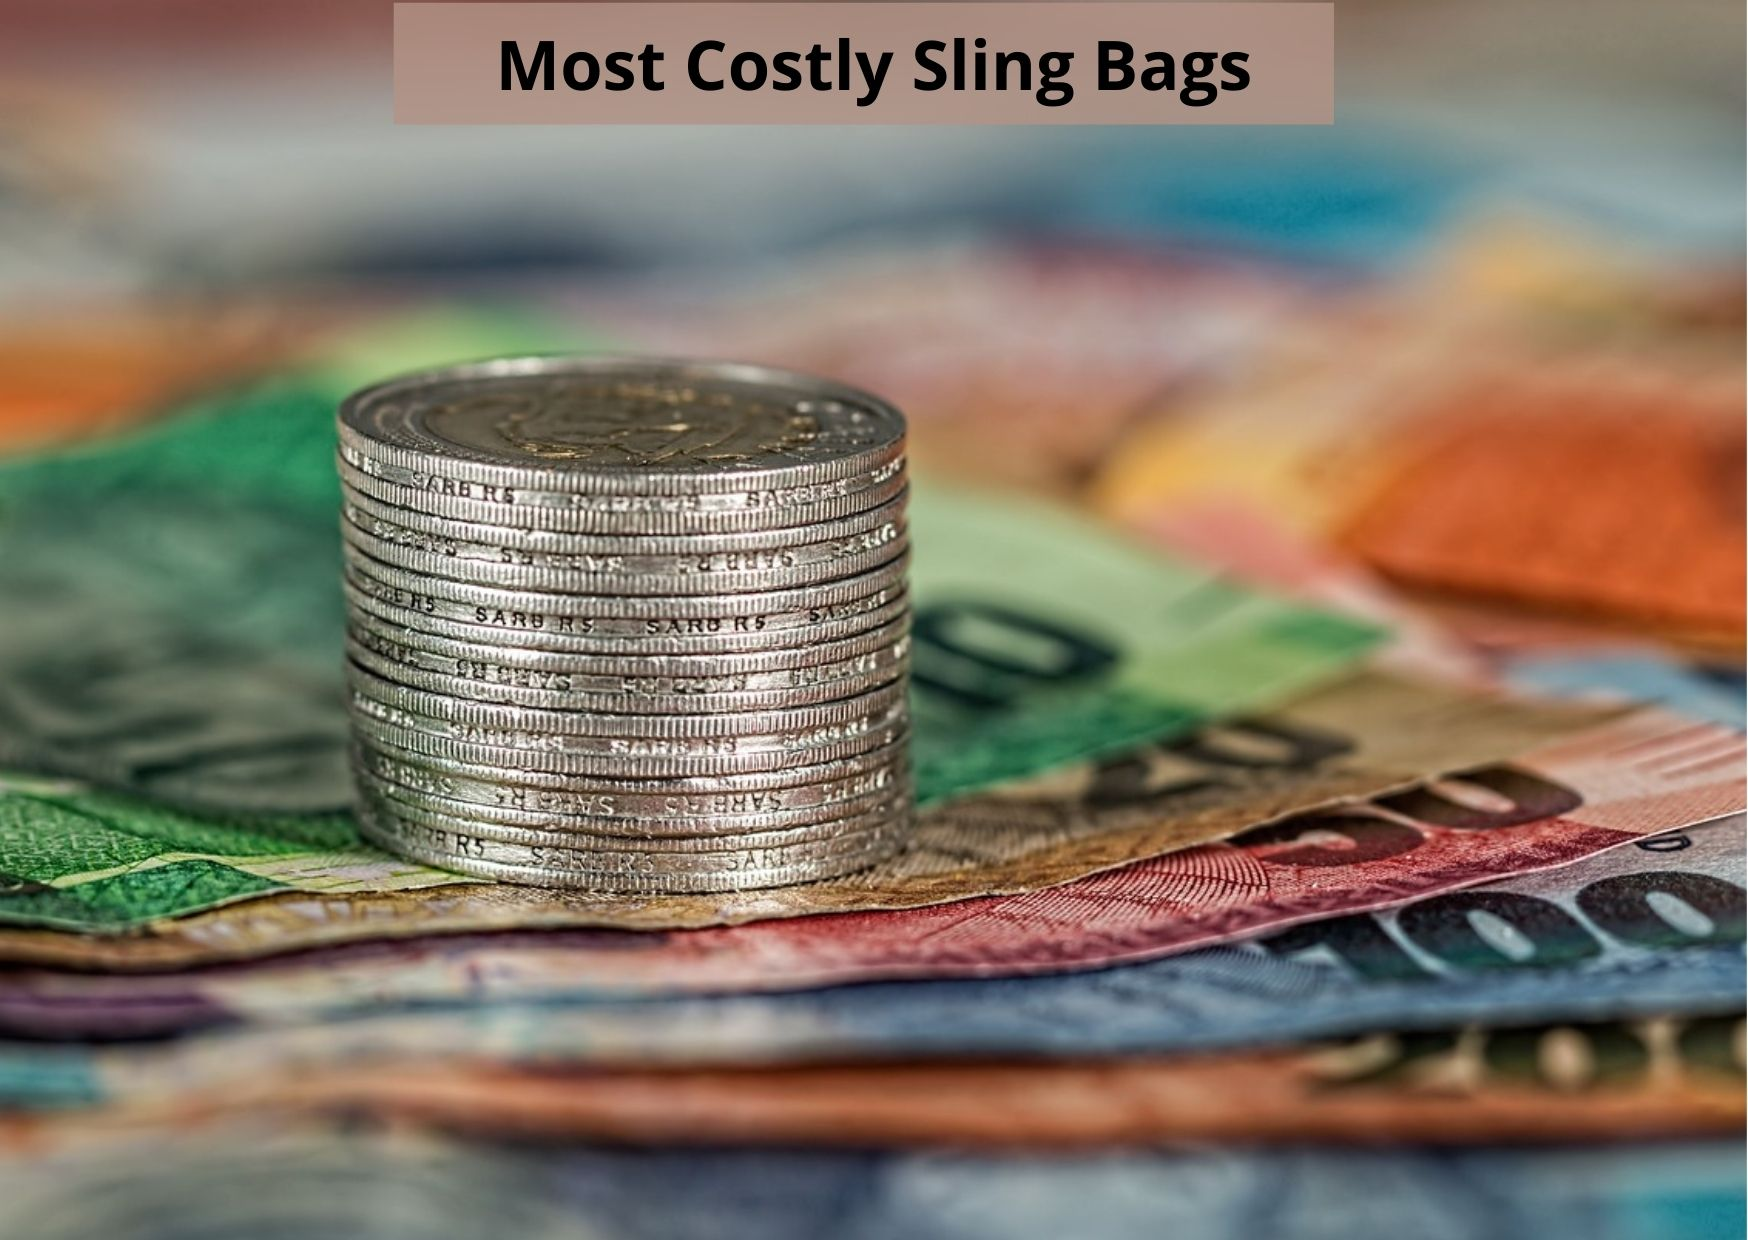 Most Costly Sling Bags